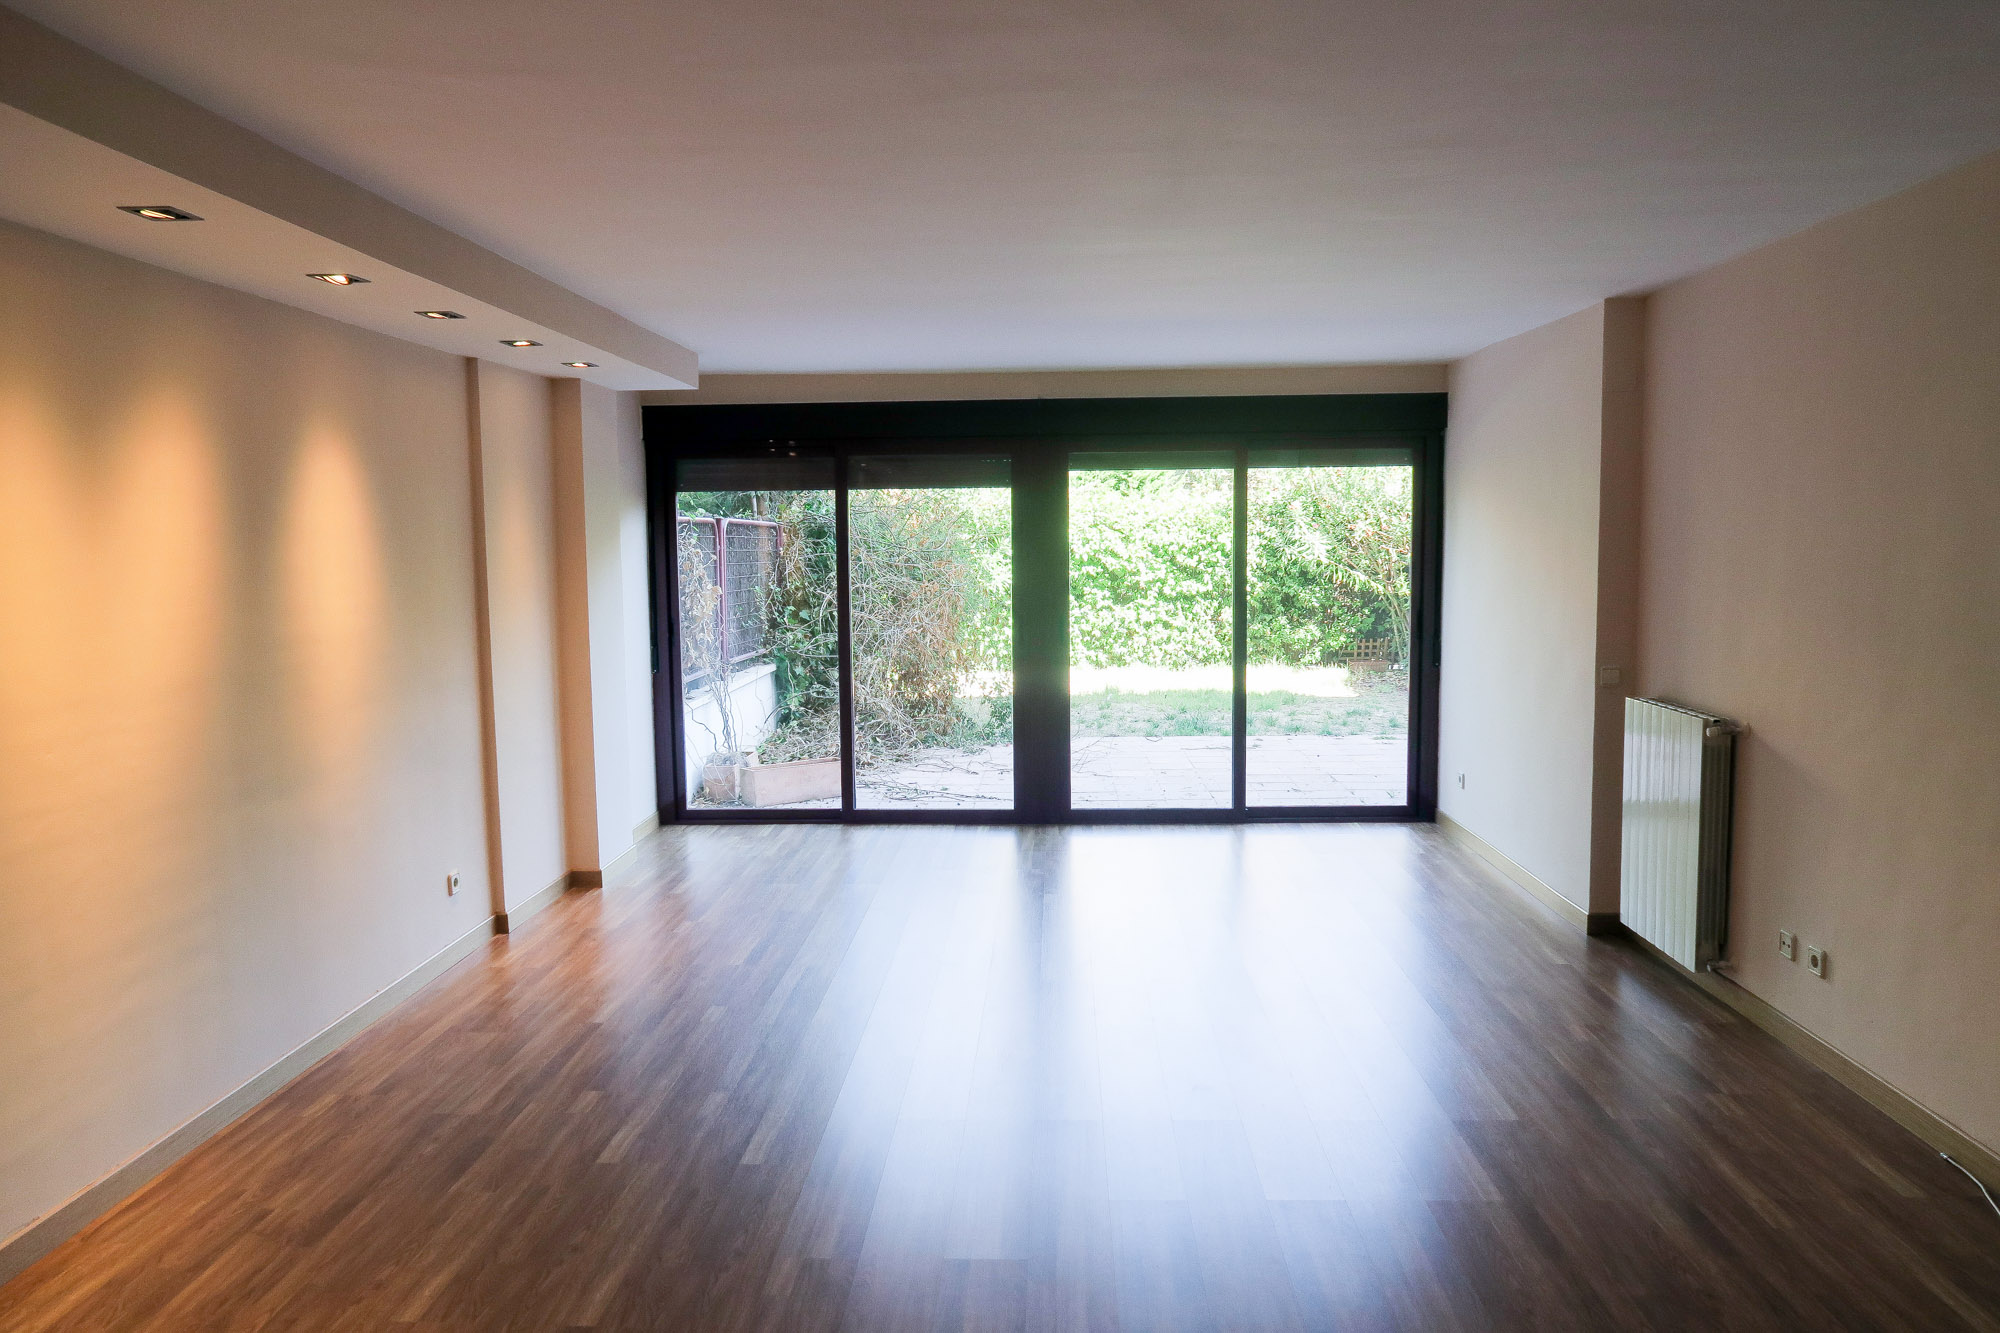 180m² Apartment for Rent in El Encinar De Los Reyes, Madrid